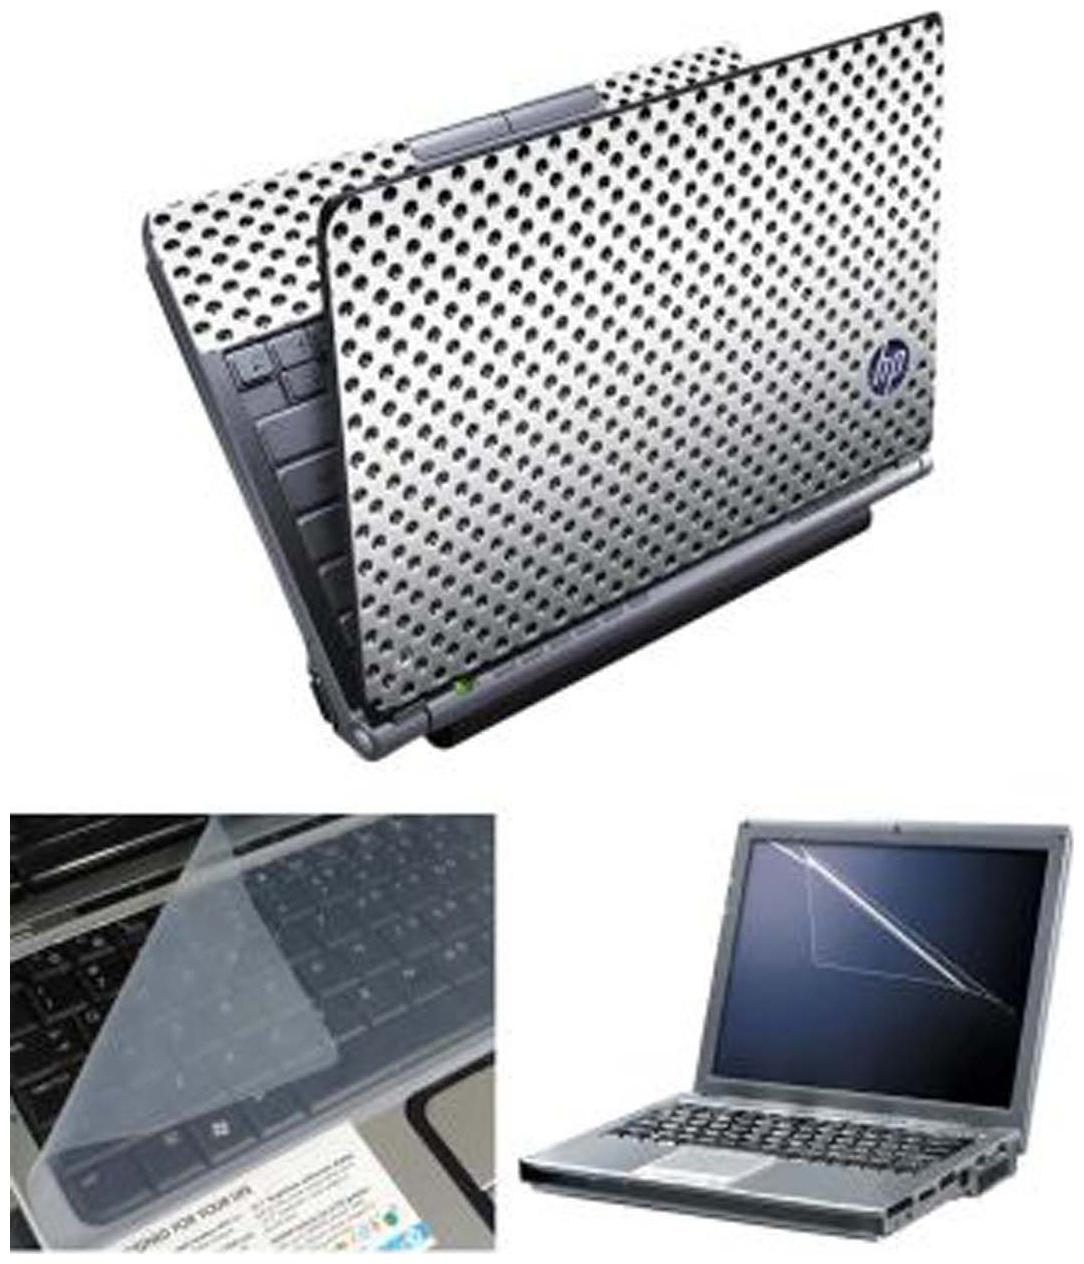 FineArts HP On Metal Laptop Skin For 15.6 inch Laptop With Screen Guard   keyboard Protector